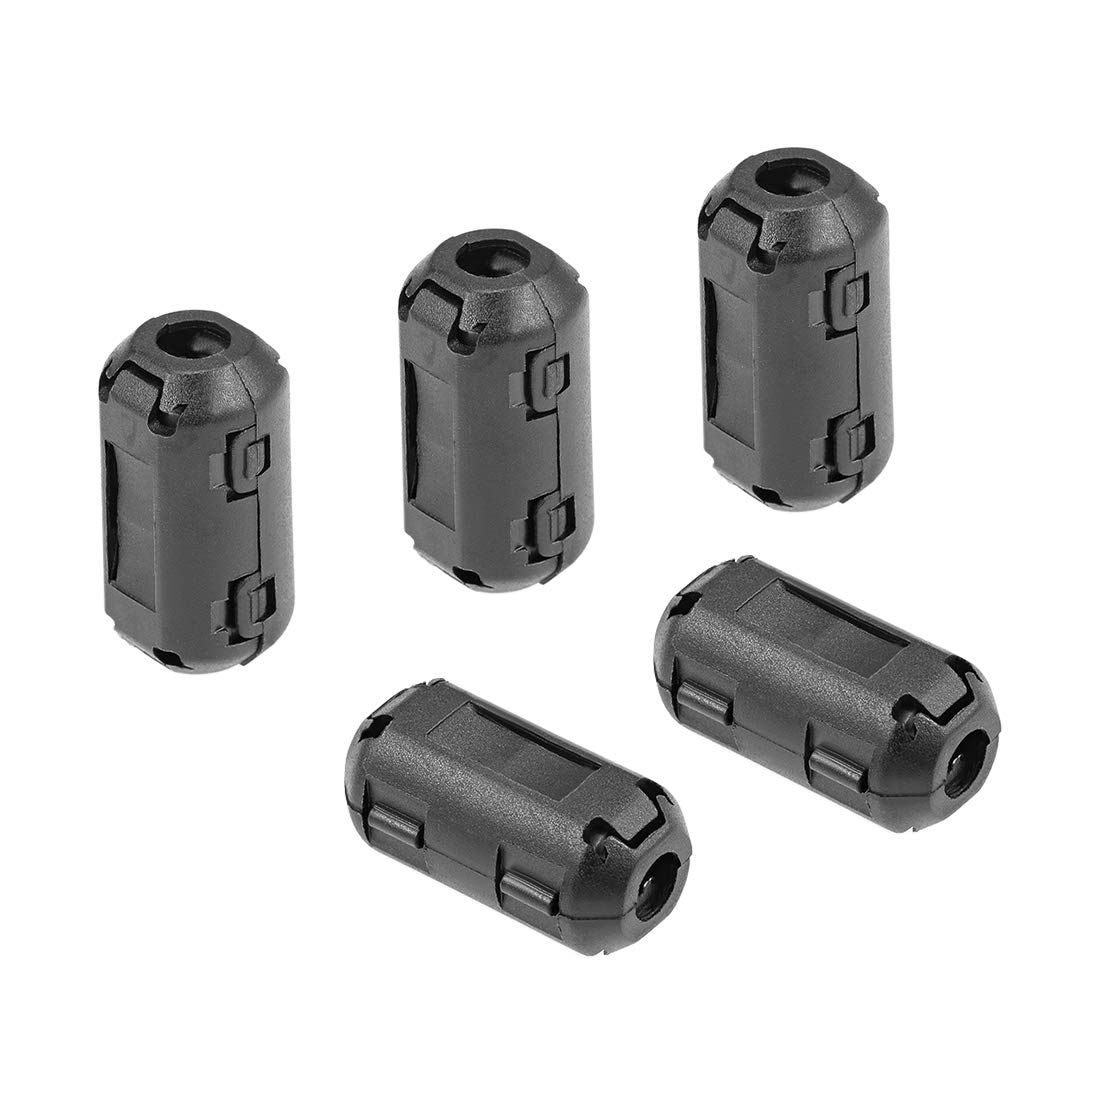 Grey 5pcs sourcing map 3.5mm Ferrite Cores Ring Clip-On RFI EMI Noise Suppression Filter Cable Clip